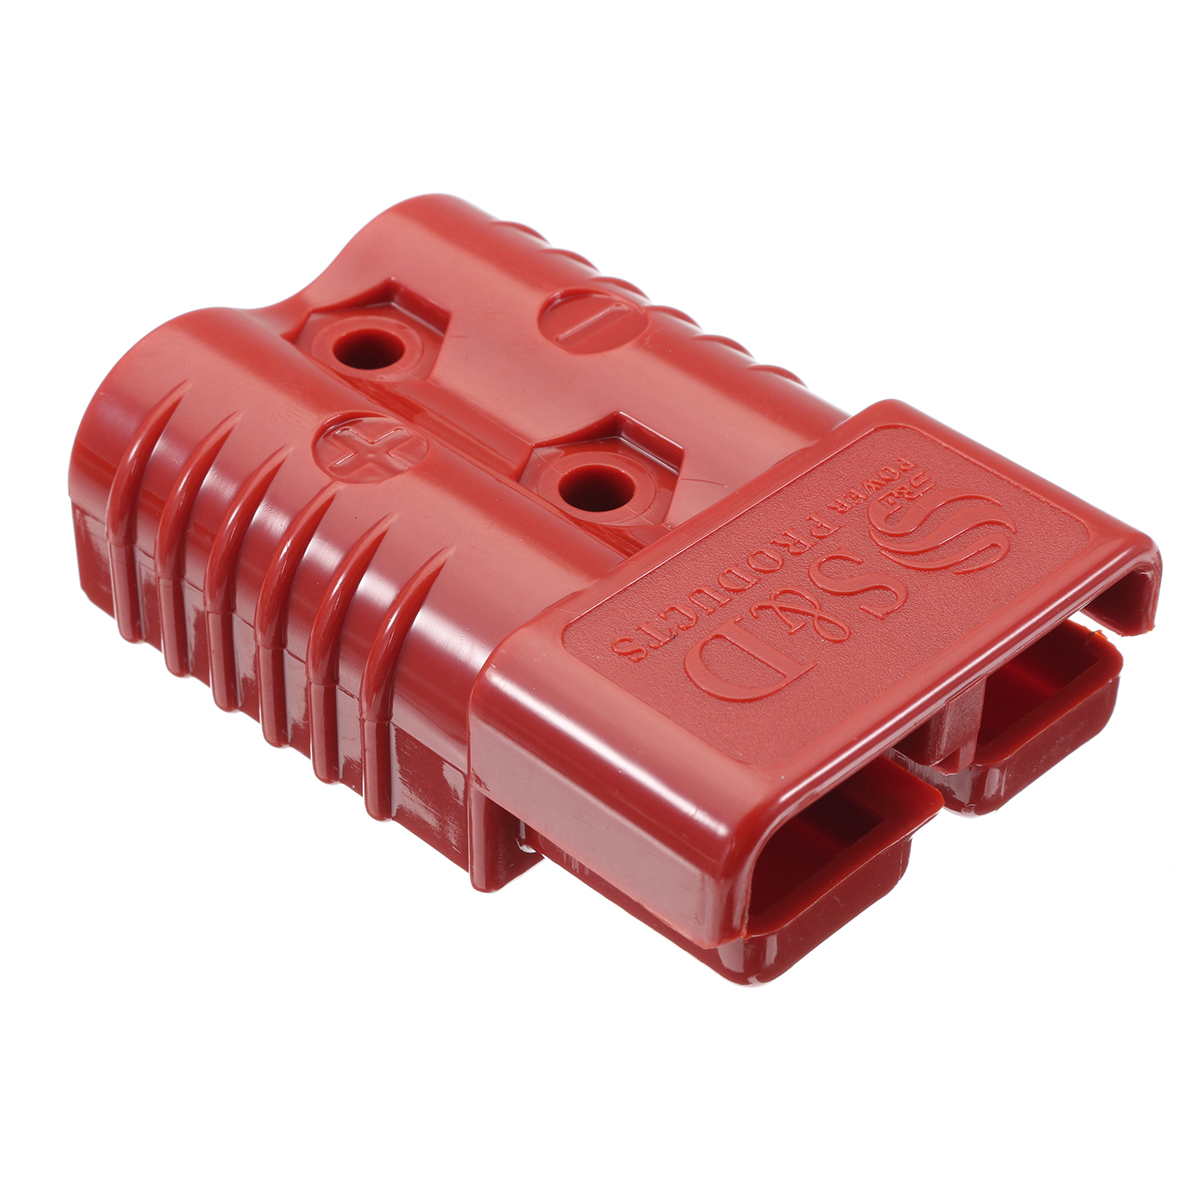 175AMP 600V Bipolar Power Cable Connector Plug 2 Plugs 4 Terminals 1 Pin Rubber Shell ABS Material